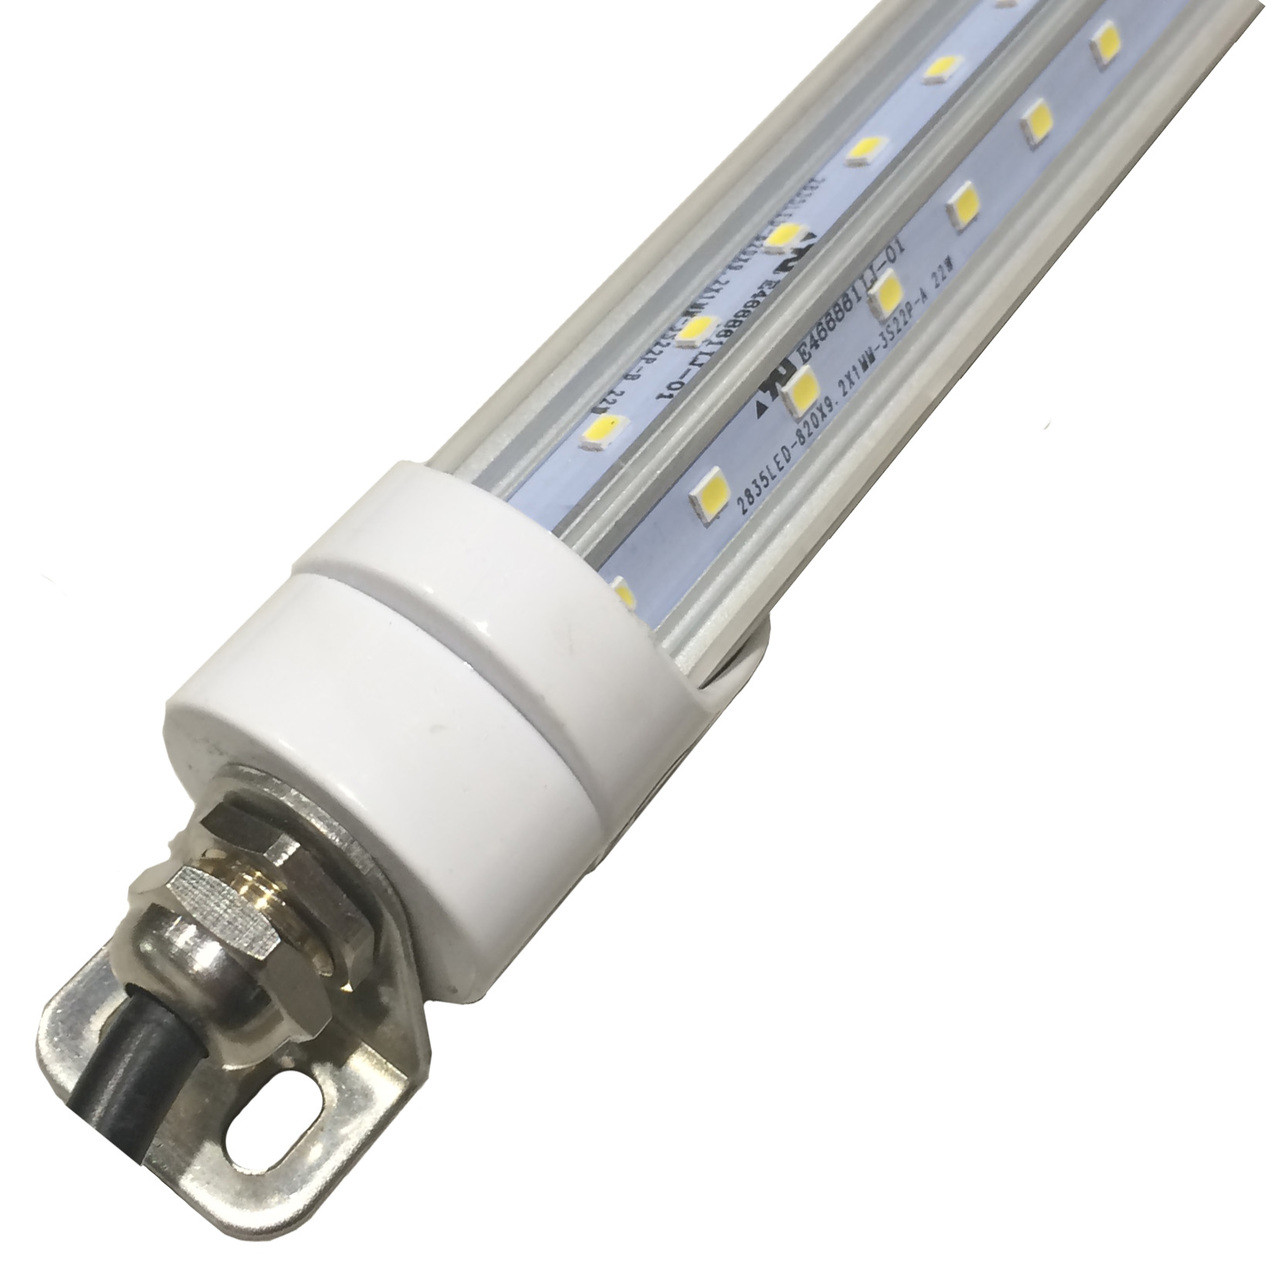 4 Foot Led Lights >> T8 Led Freezer Cooler Six Foot Tube To Replace Florescent S Led